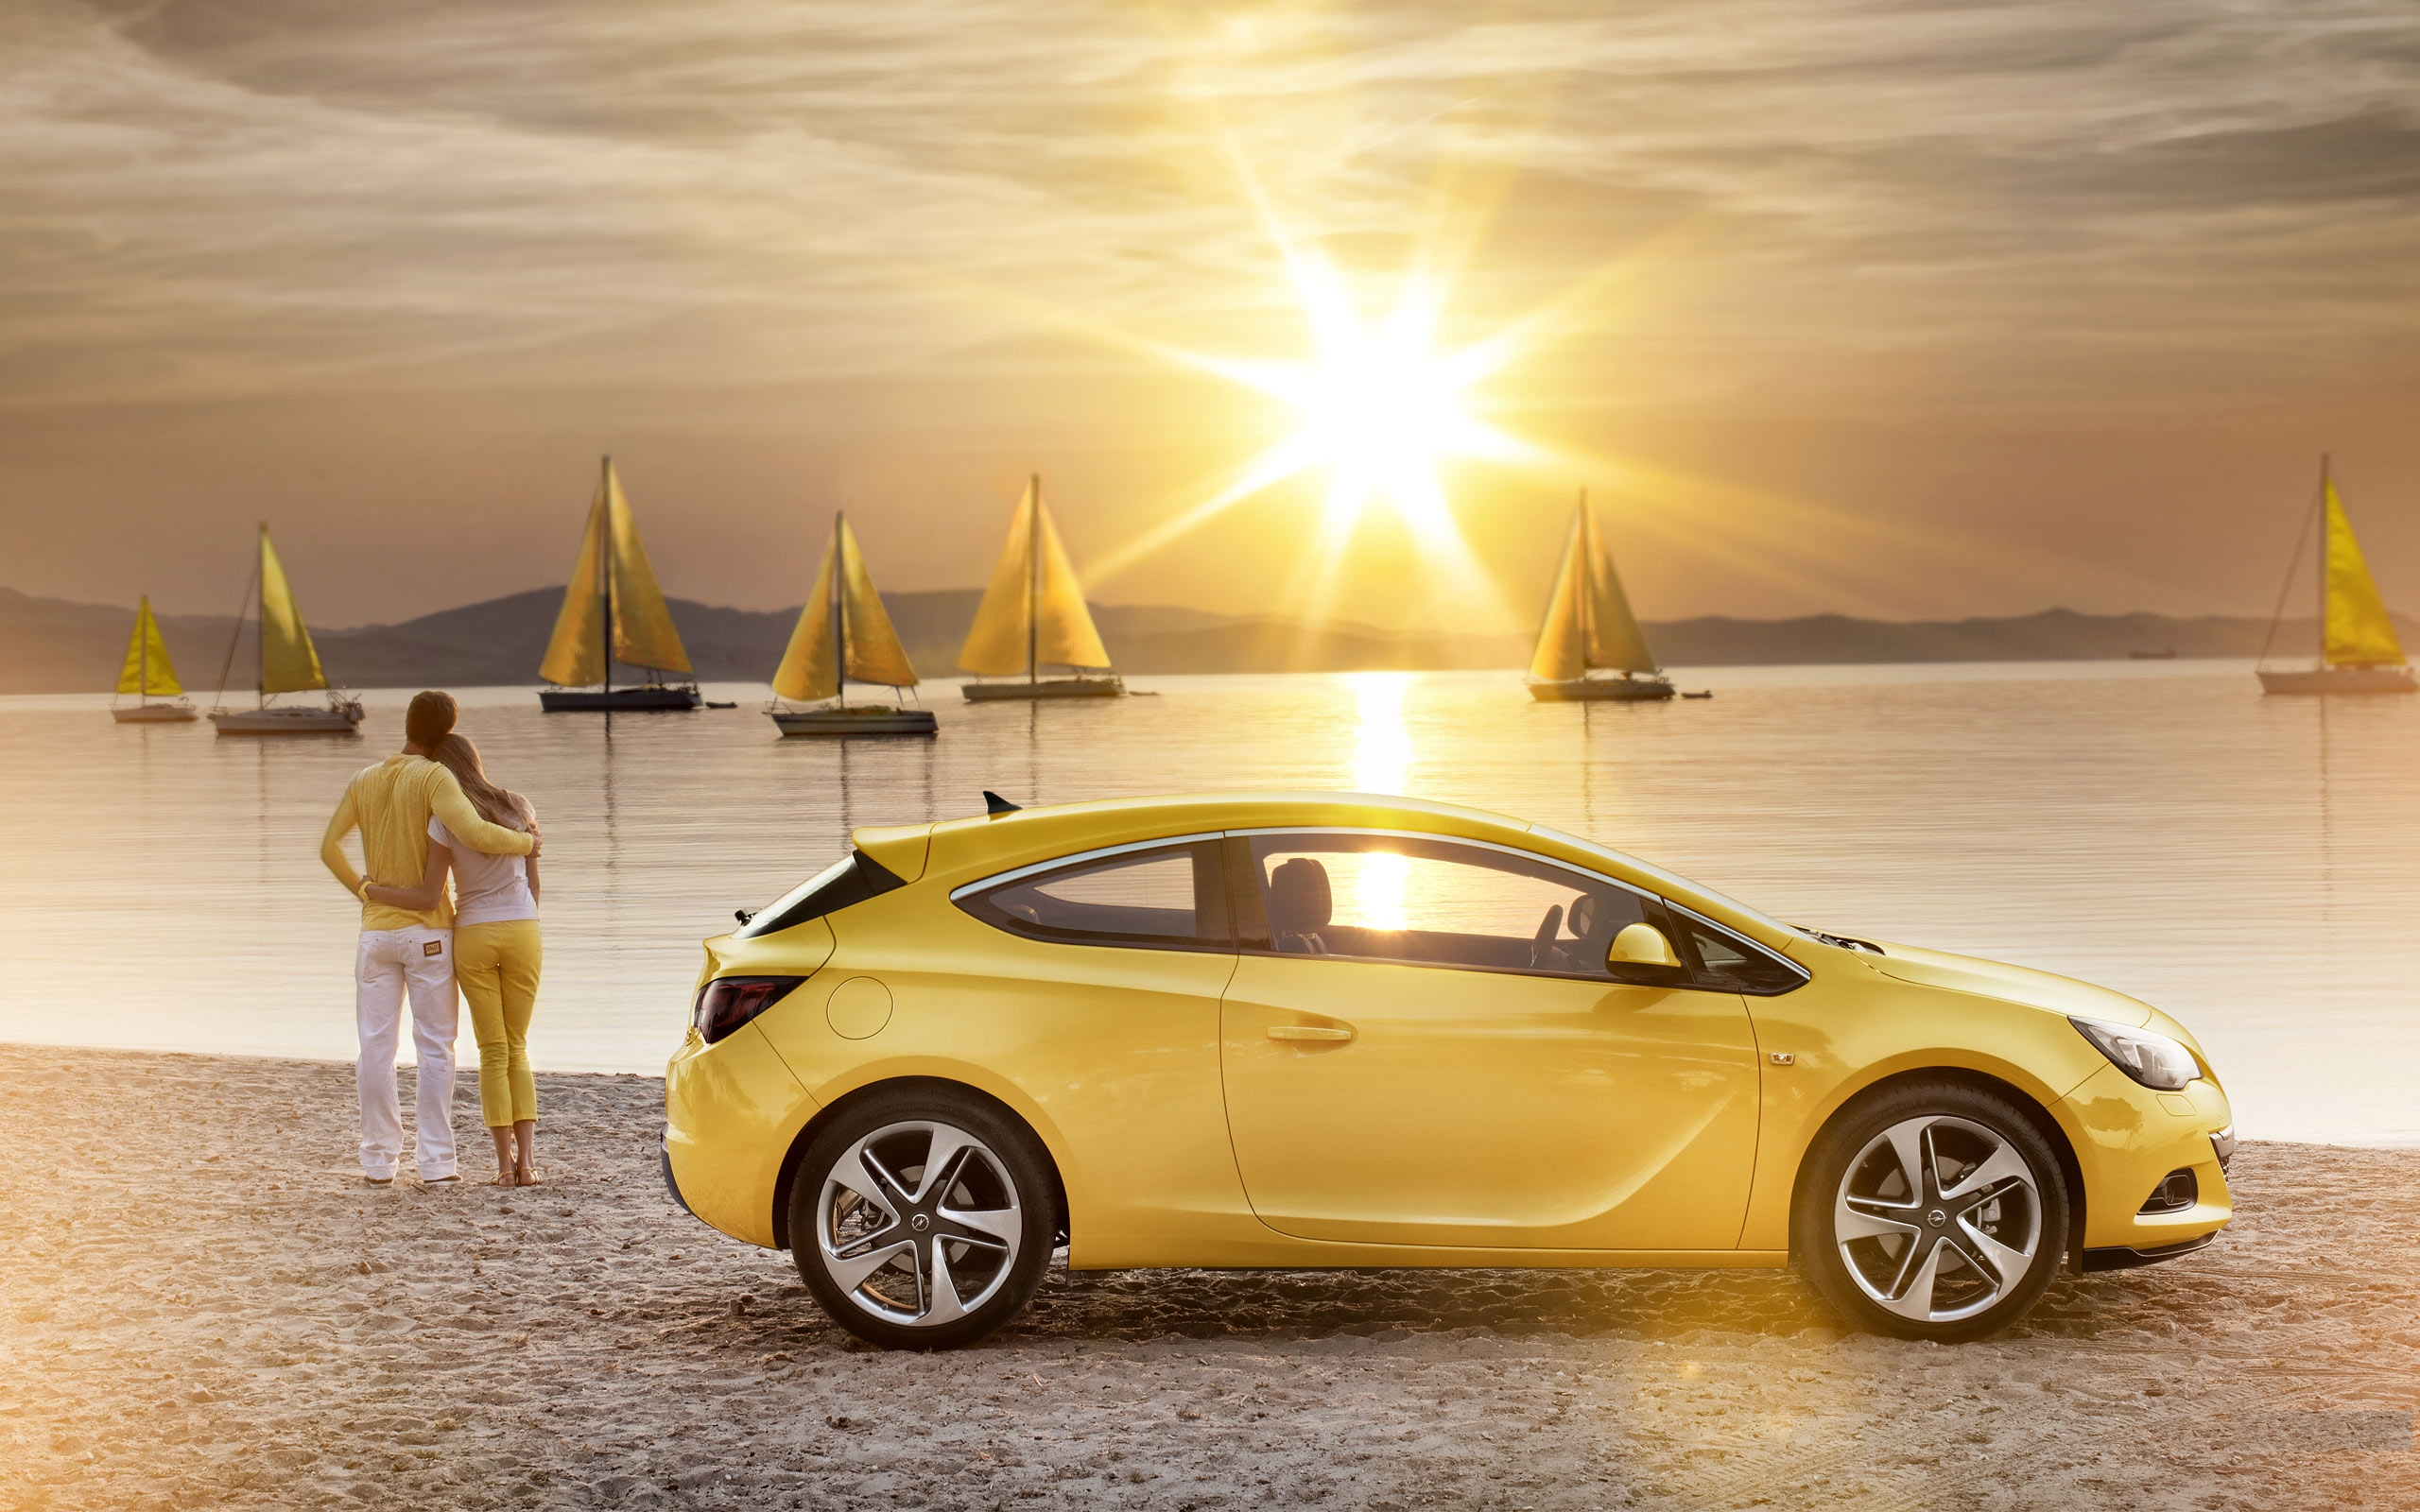 download Yellow Sea Boats And Yellow Sports Car-2014